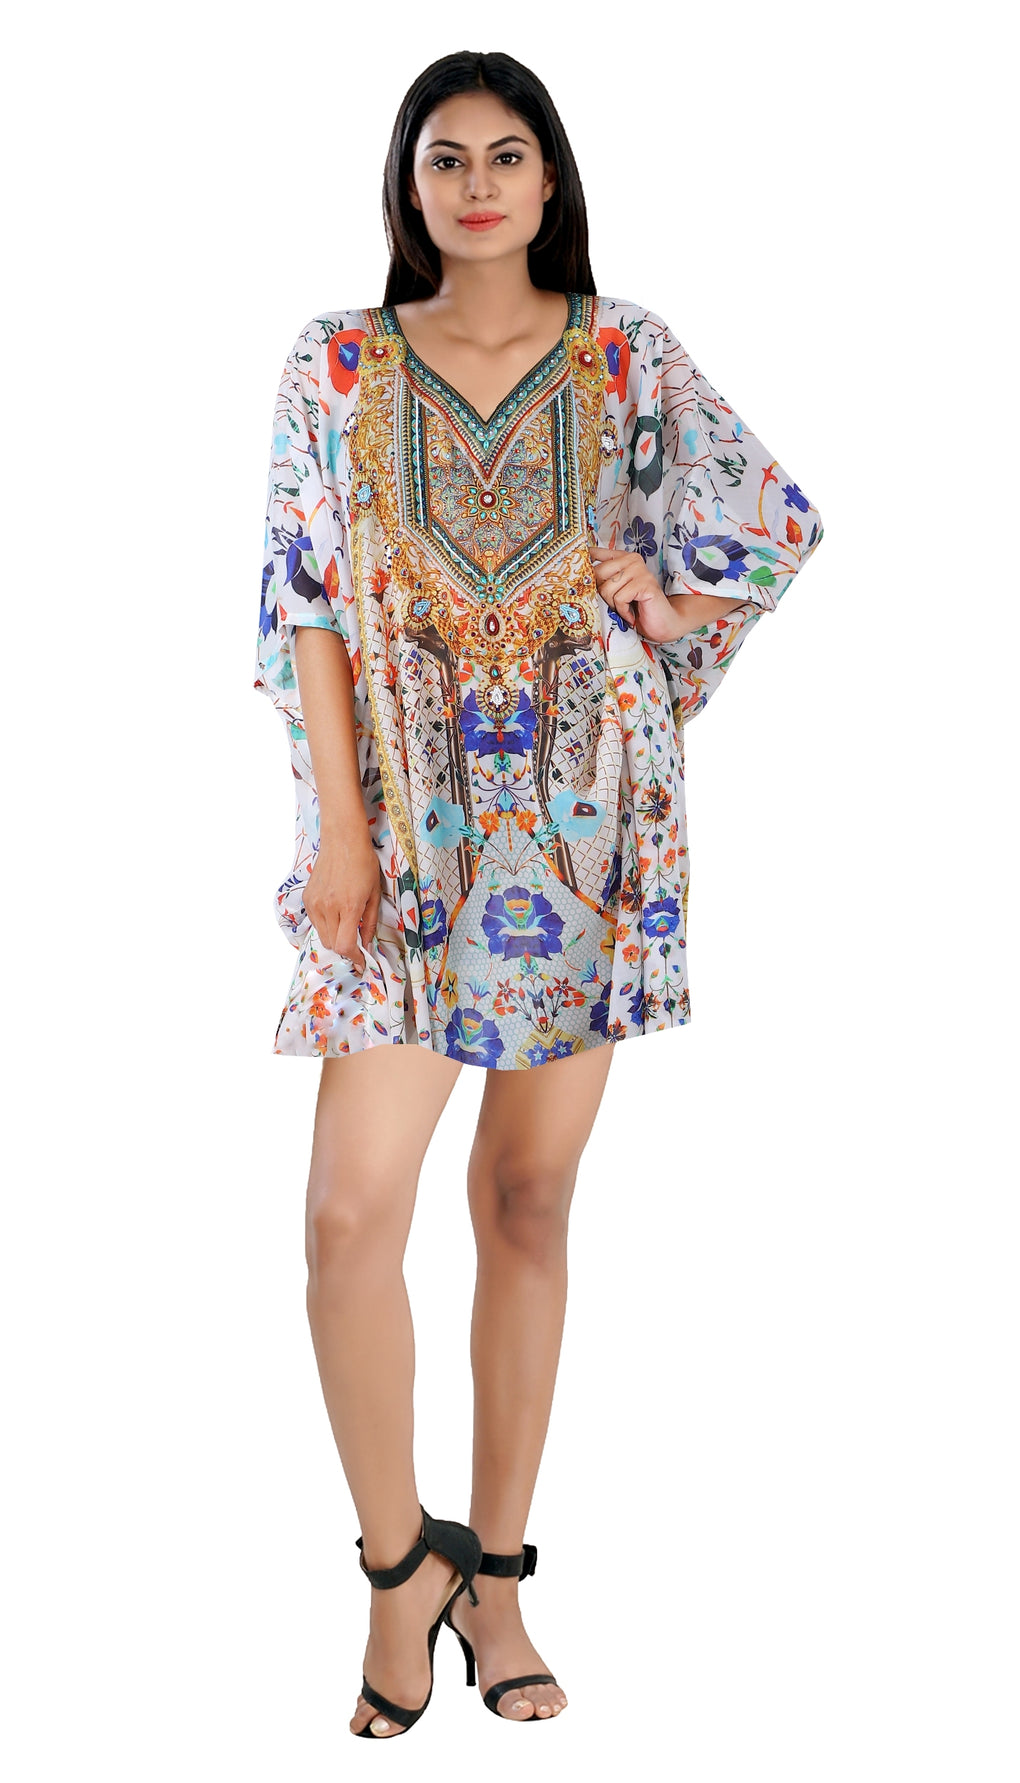 Floral printed Silk Kaftan Resort wear Beach Cover up Evening Maxi Dress short kaftan - Silk kaftan